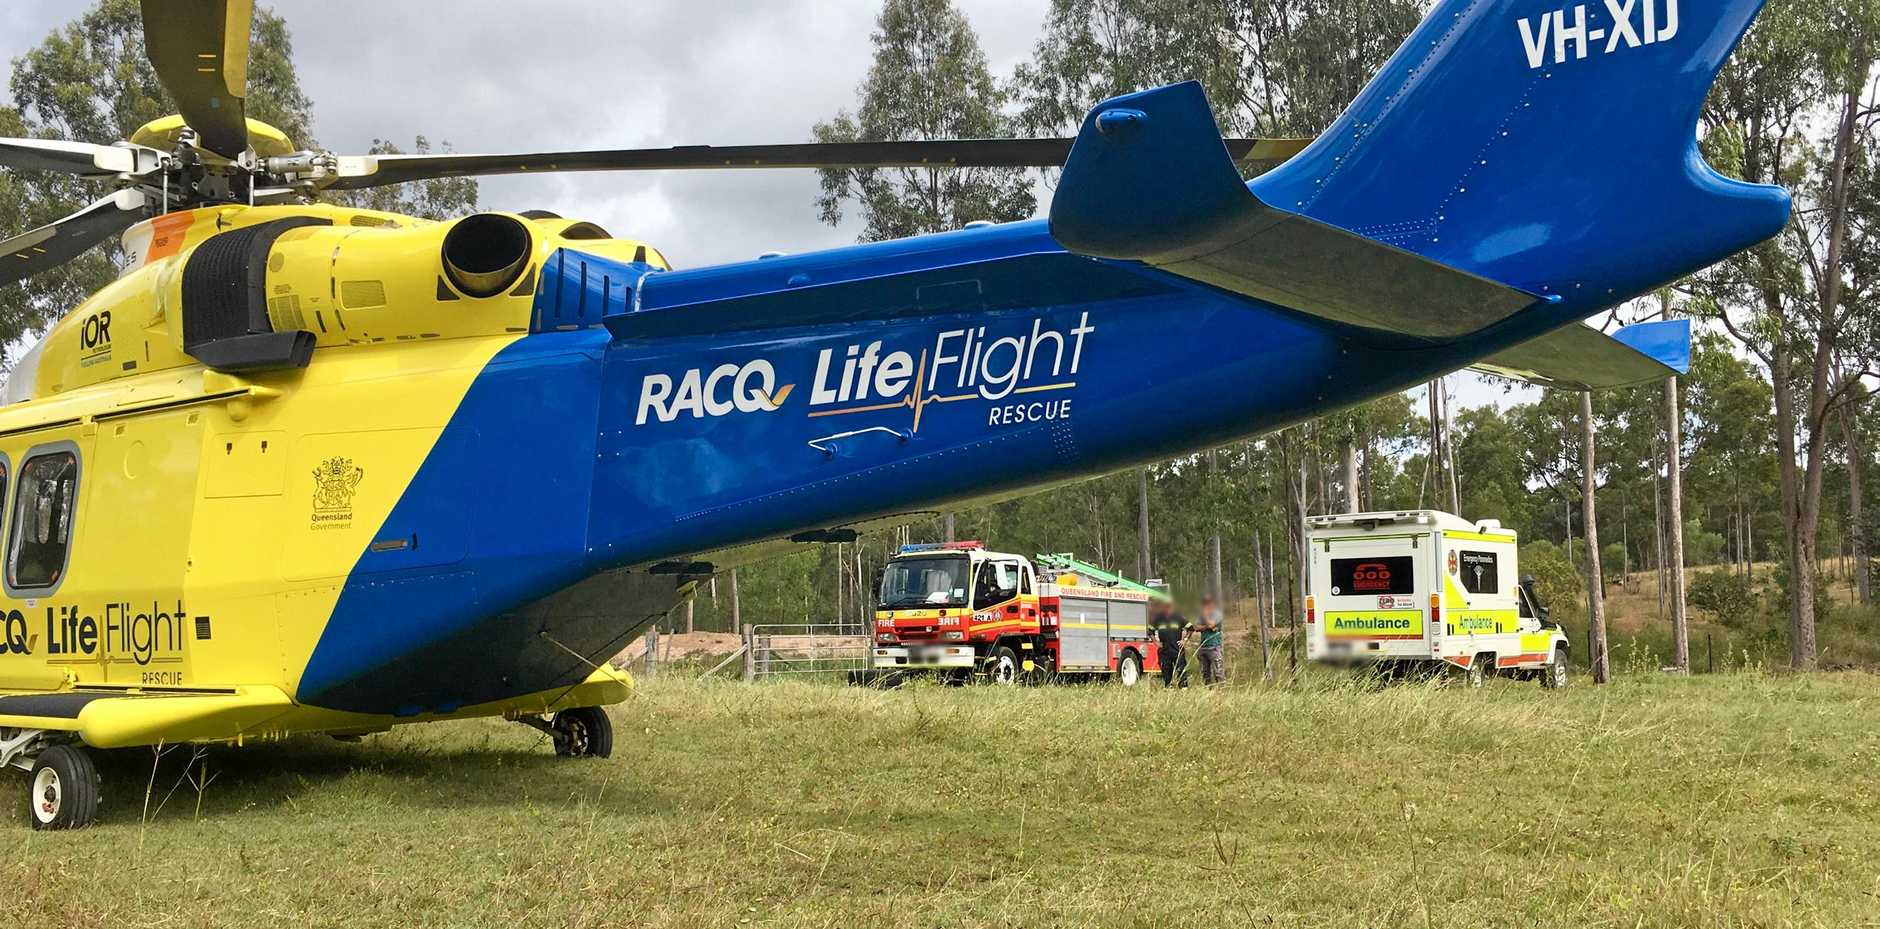 RESCUE: RACQ LifeFlight crew and emergency services at the scene of the accident, a property near Biggenden.